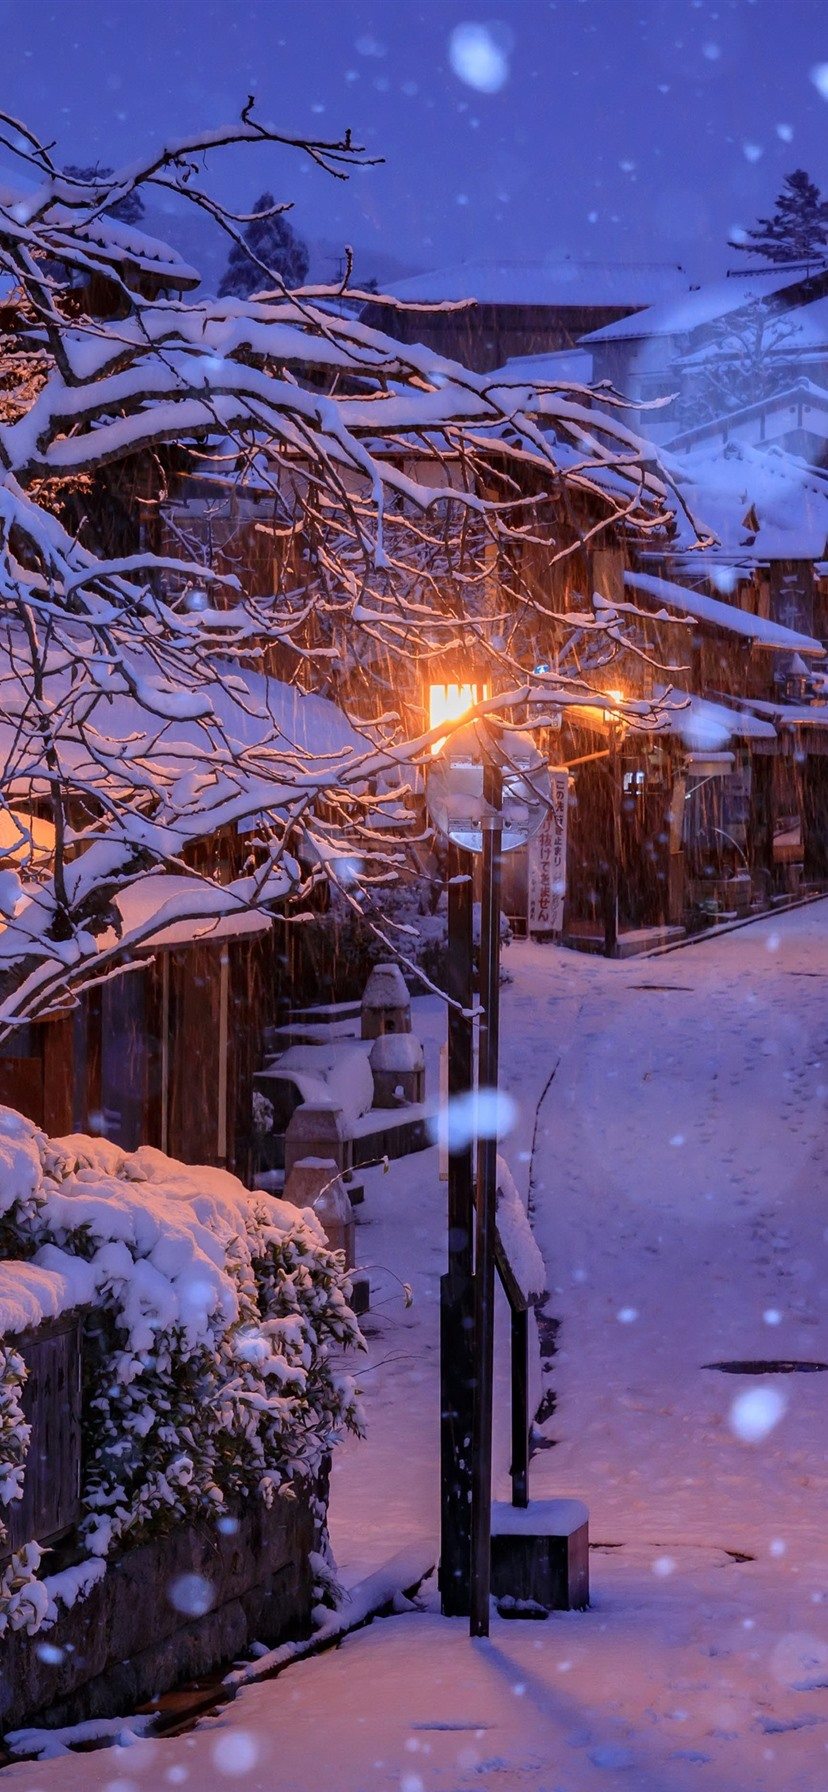 Wallpaper Japan Kyoto Houses Snow Trees Night Lights 3840x2160 Uhd 4k Picture Image